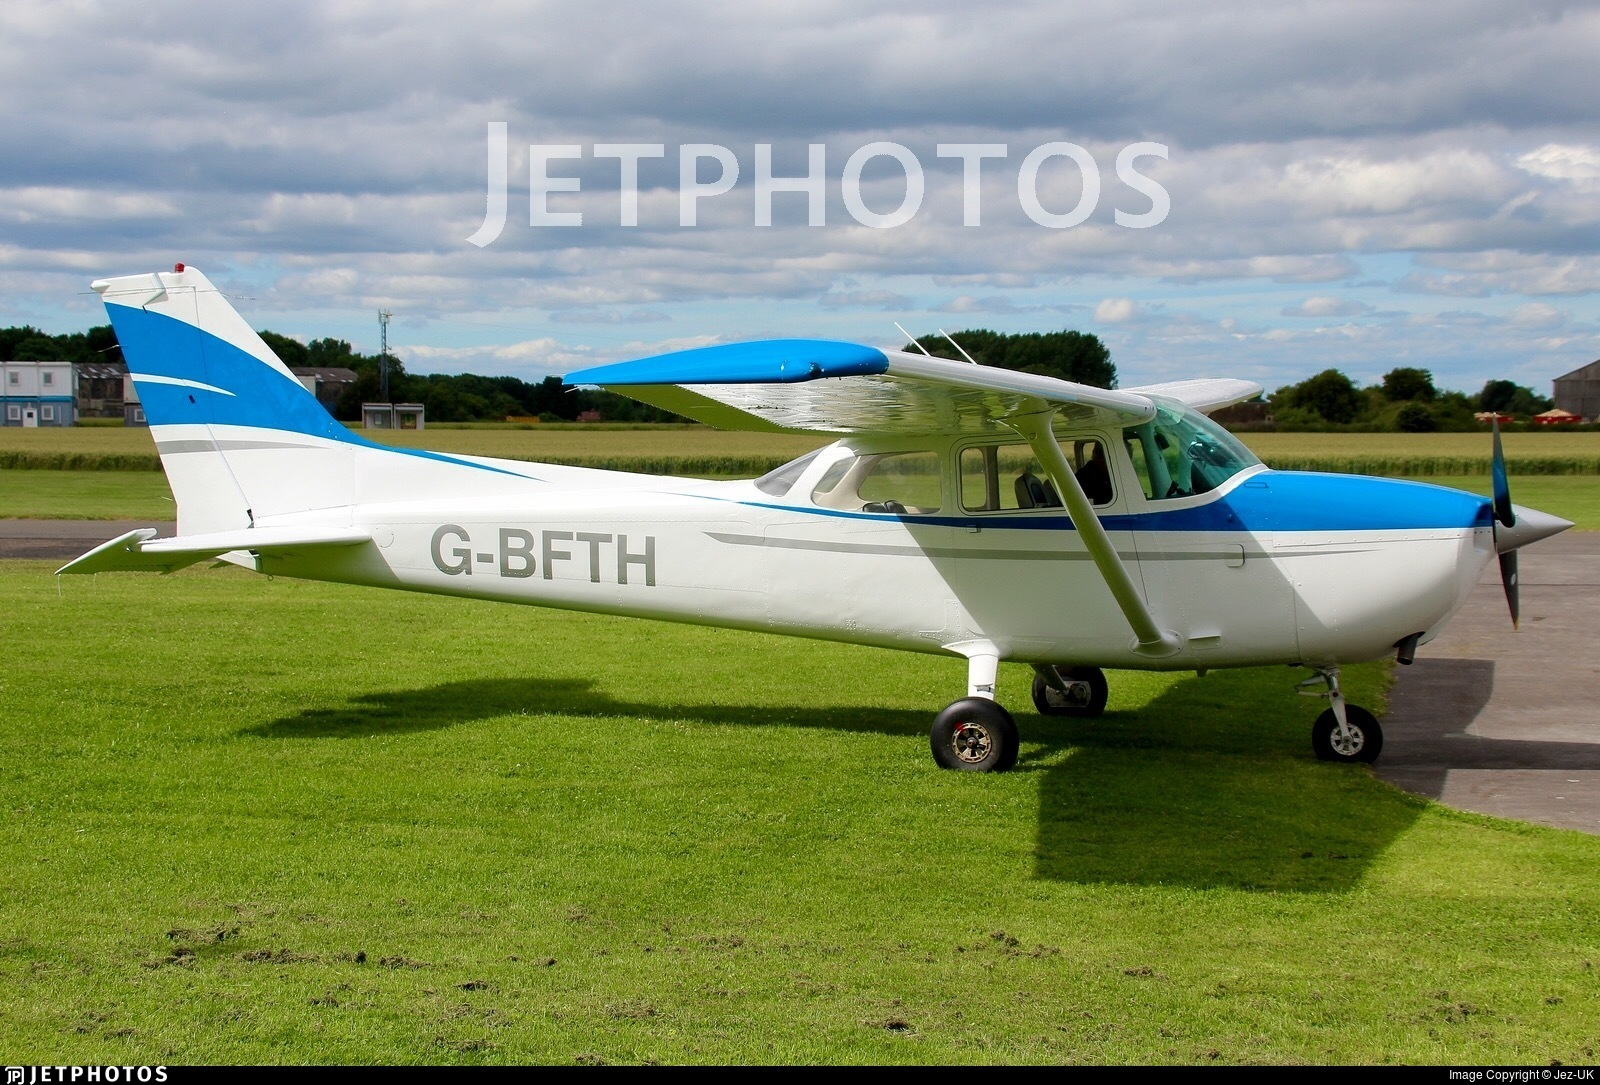 G-BFTH - Reims-Cessna F172N Skyhawk - Private